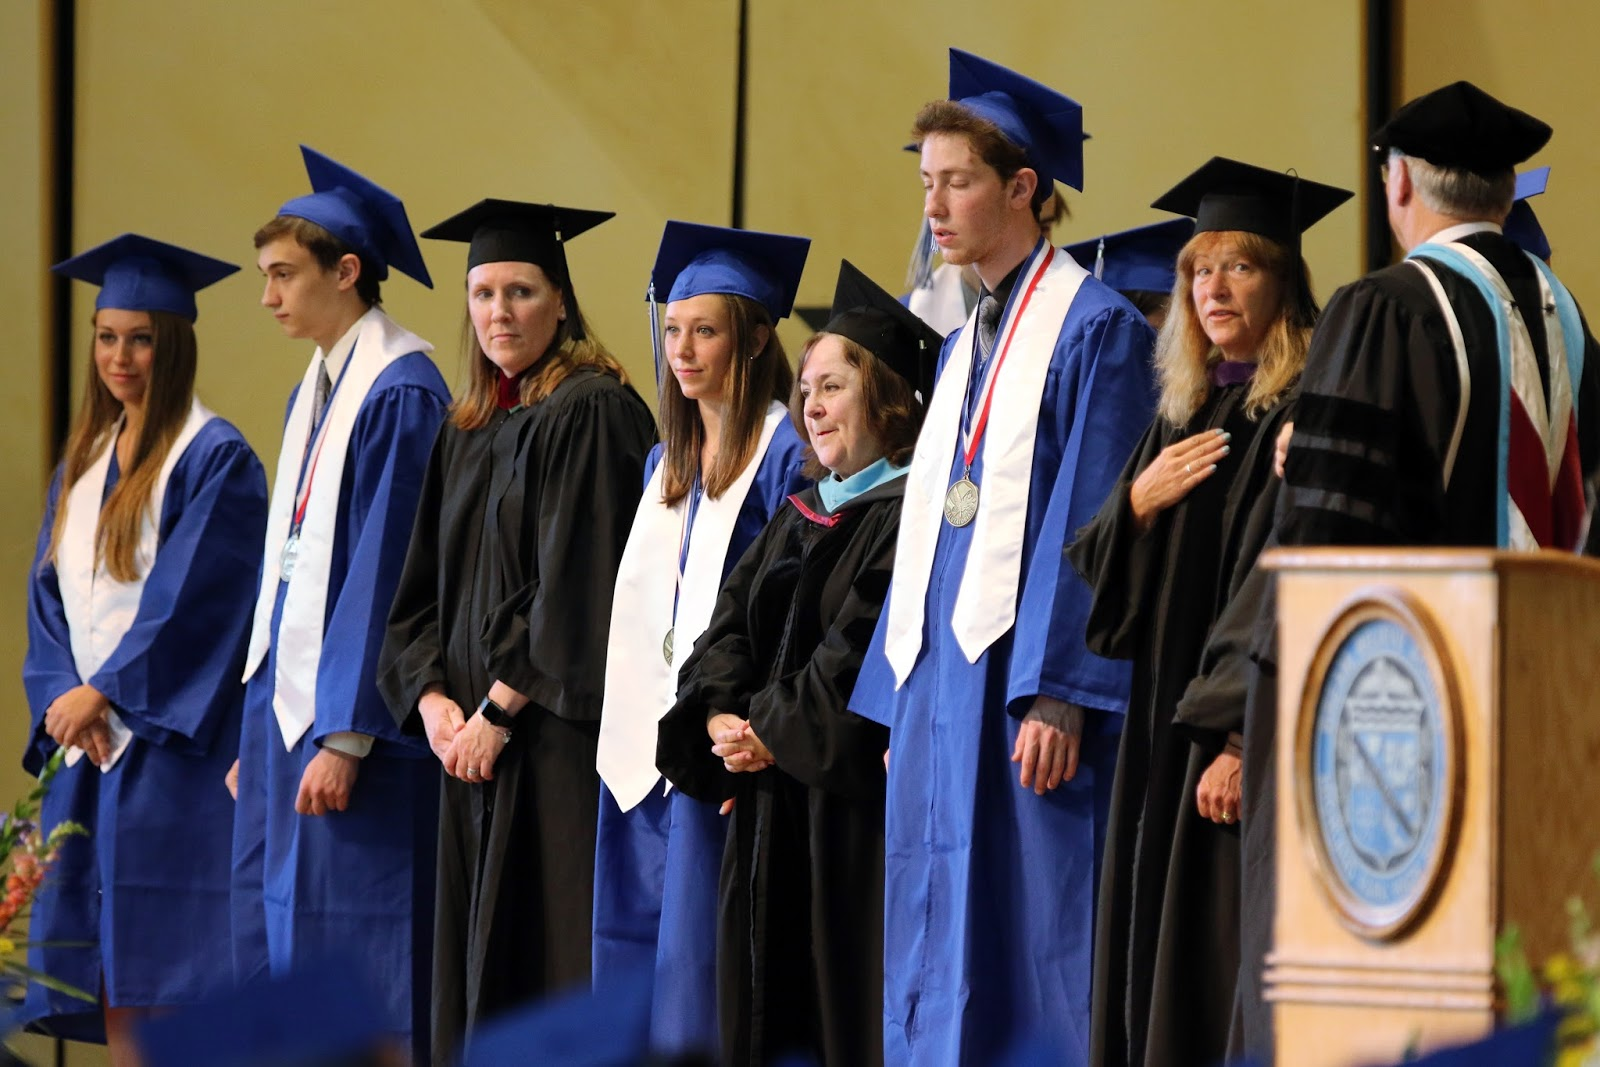 What To Bring To A High School Graduation Ceremony